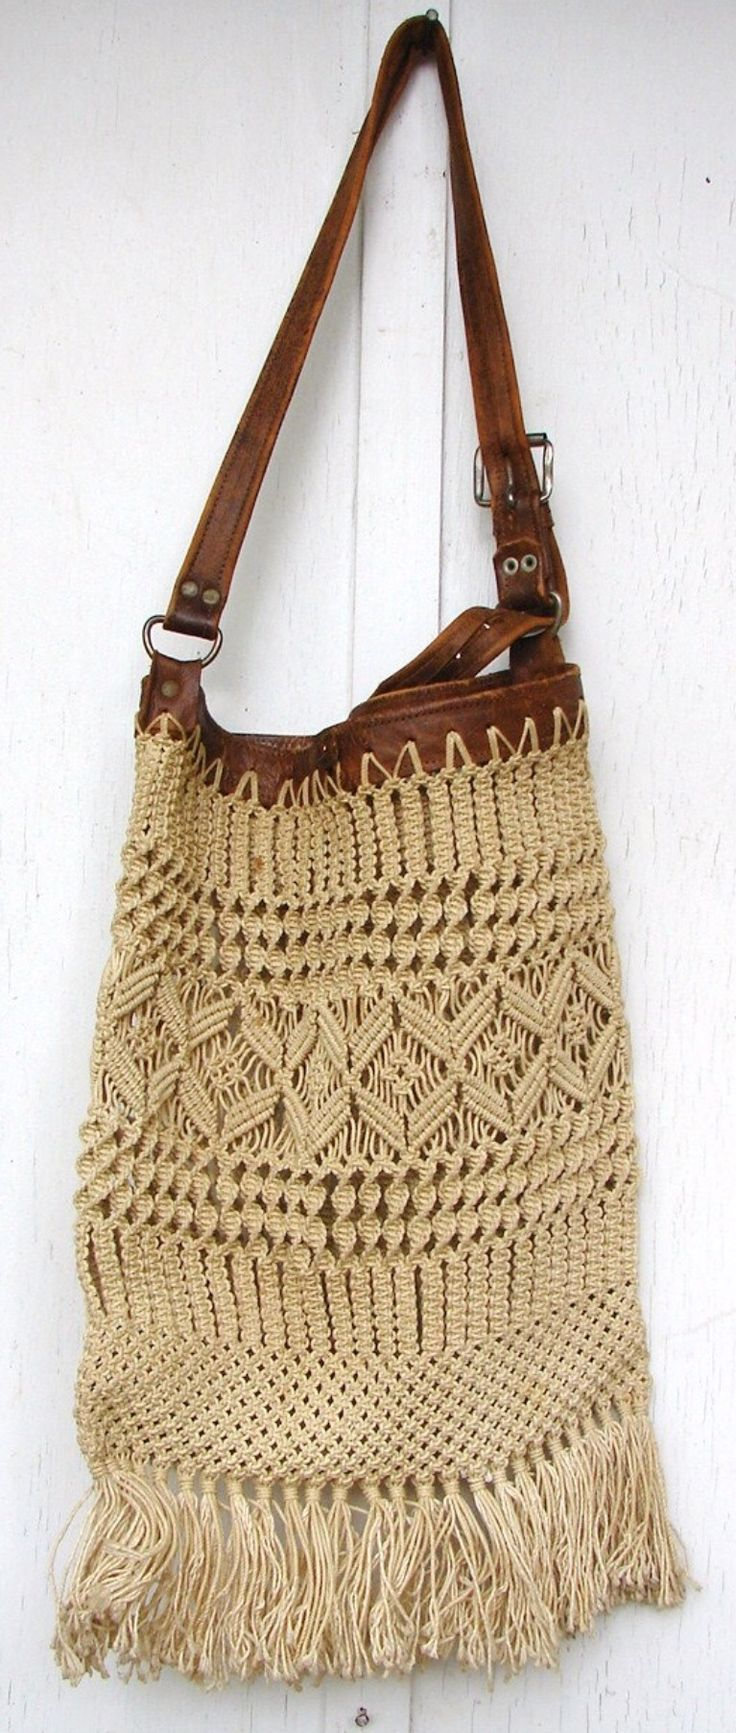 macrame bag - should try making this sometime...